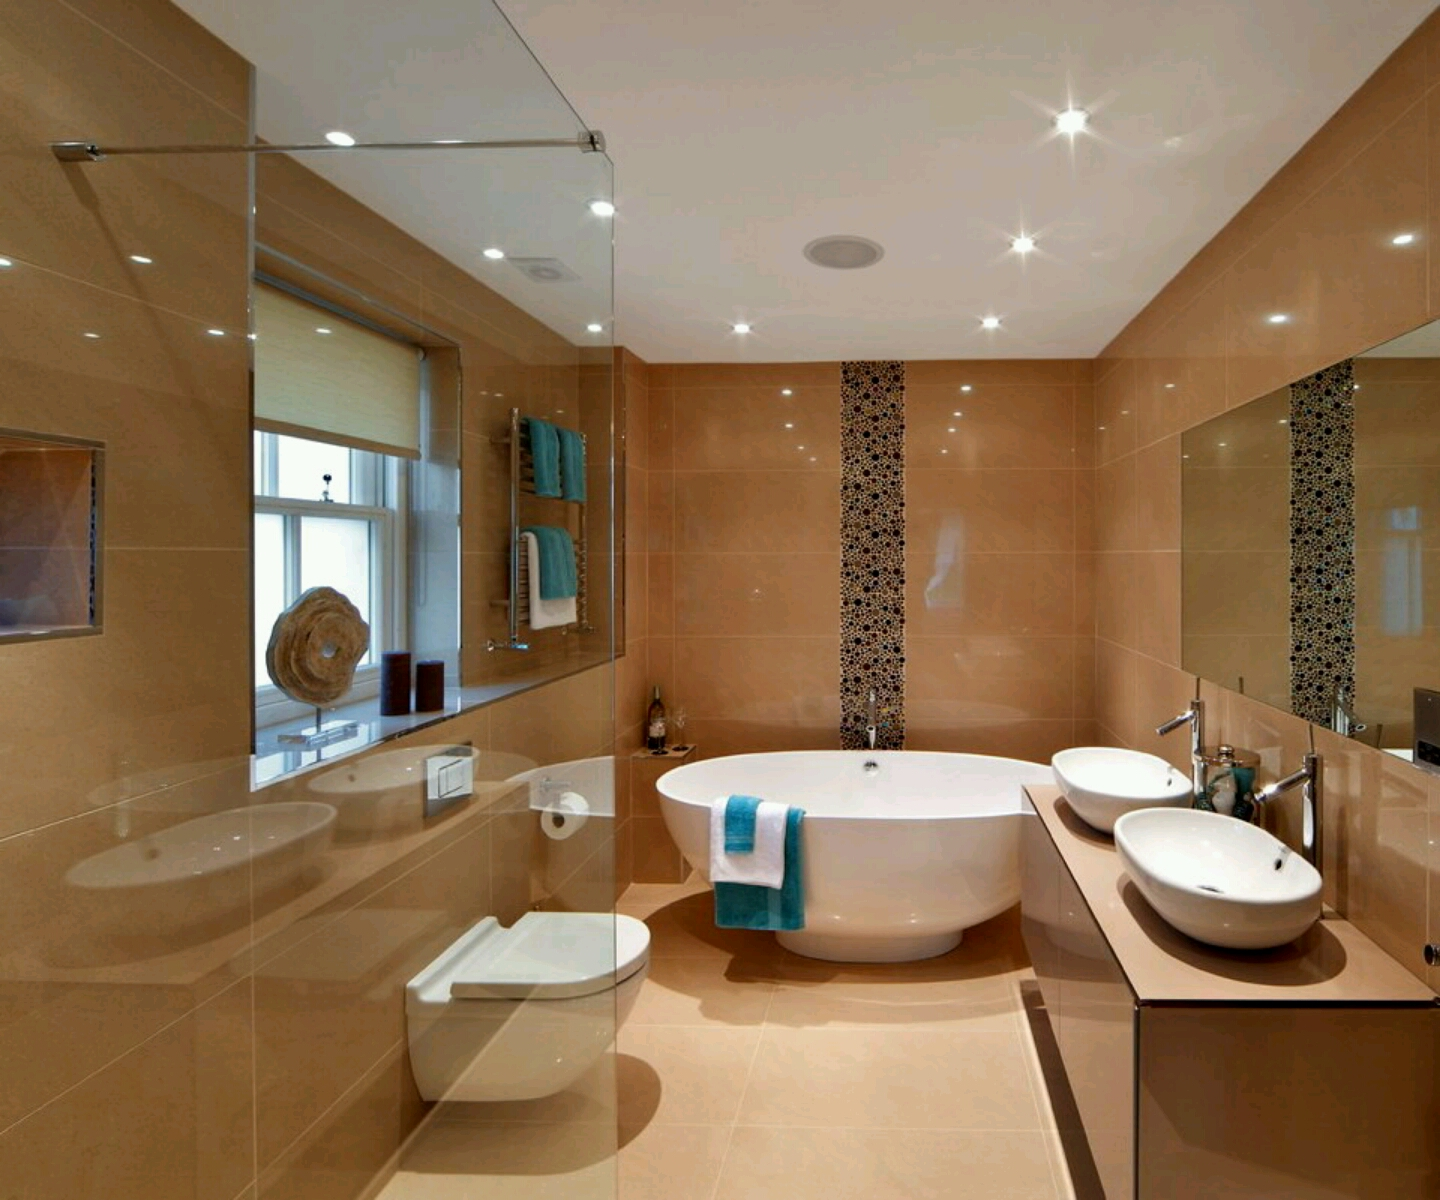 New home designs latest luxury modern bathrooms designs for Latest bathroom sink designs